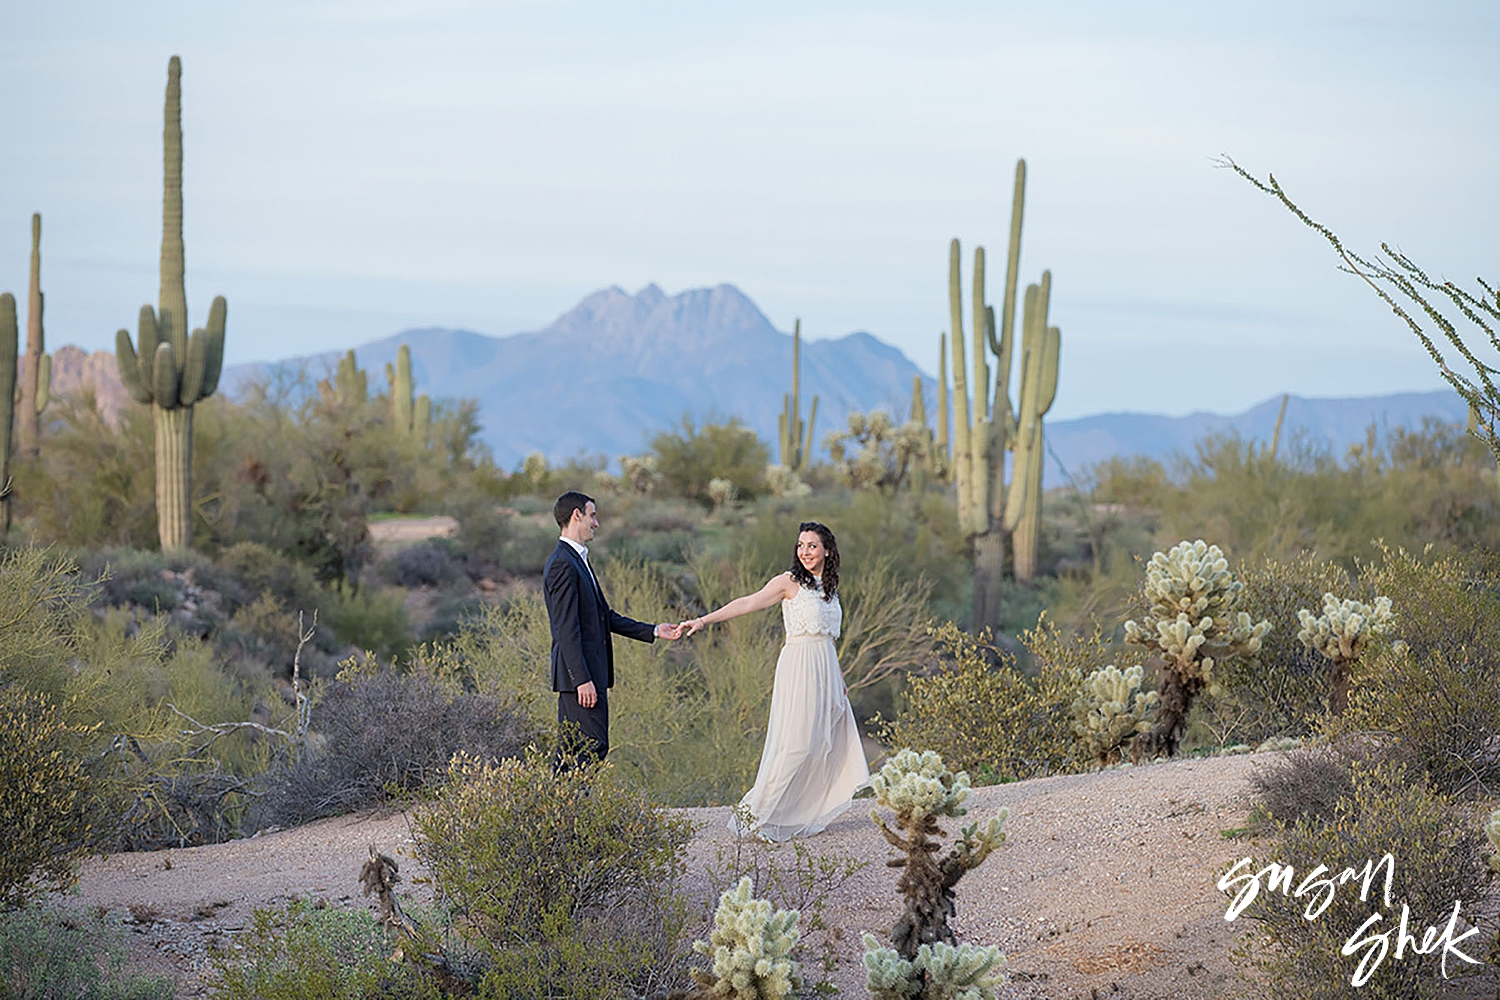 How to Find a Destination Wedding Photographer